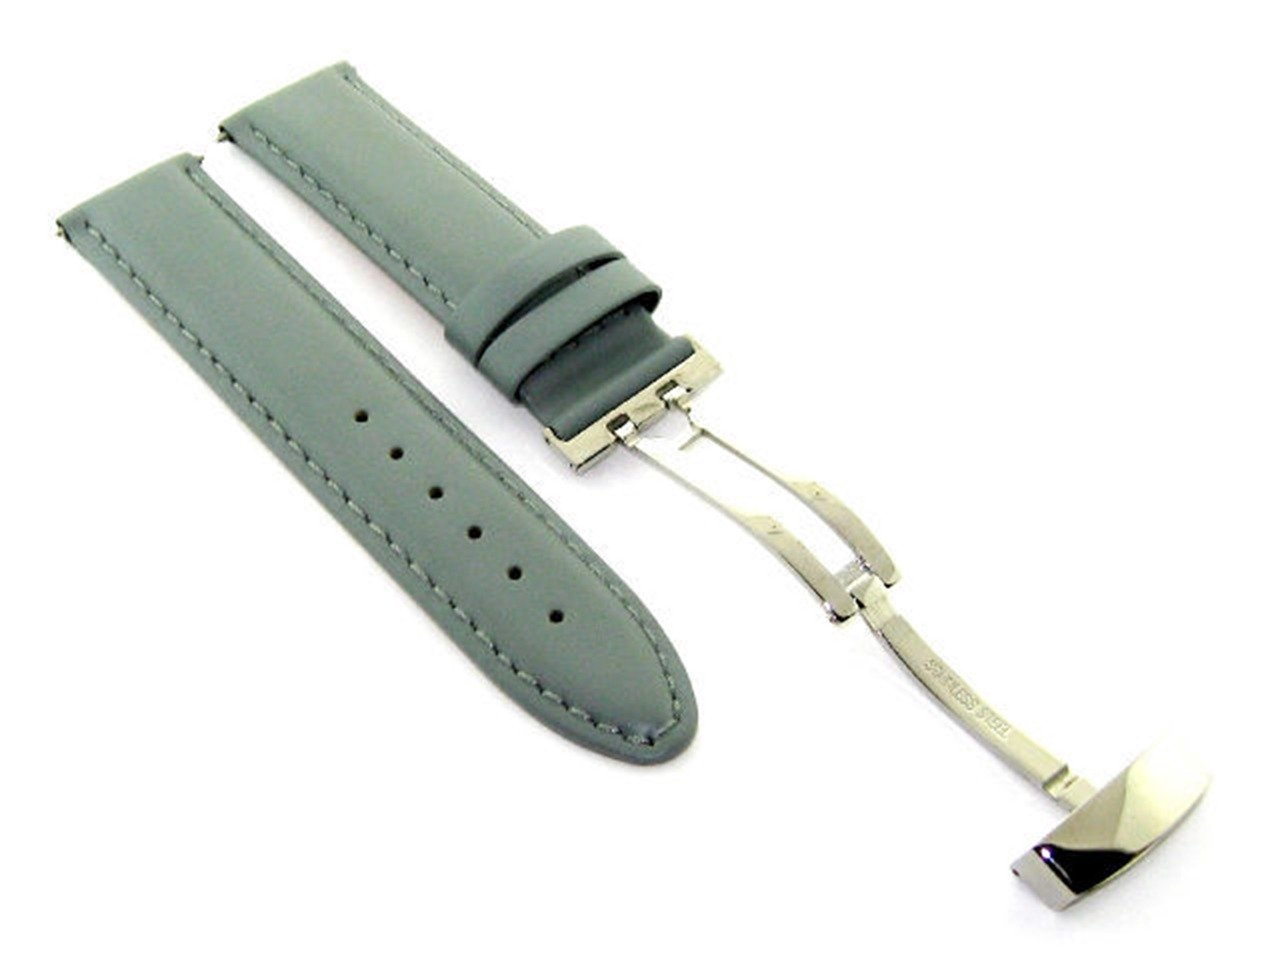 18 – 19 – 20 – 22 – 24 mm Smooth Leather Watch Band Strap Deployment Clasp for Citizenグレー# 8 18mm グレー 18mm|グレー グレー 18mm B07DHM14M7